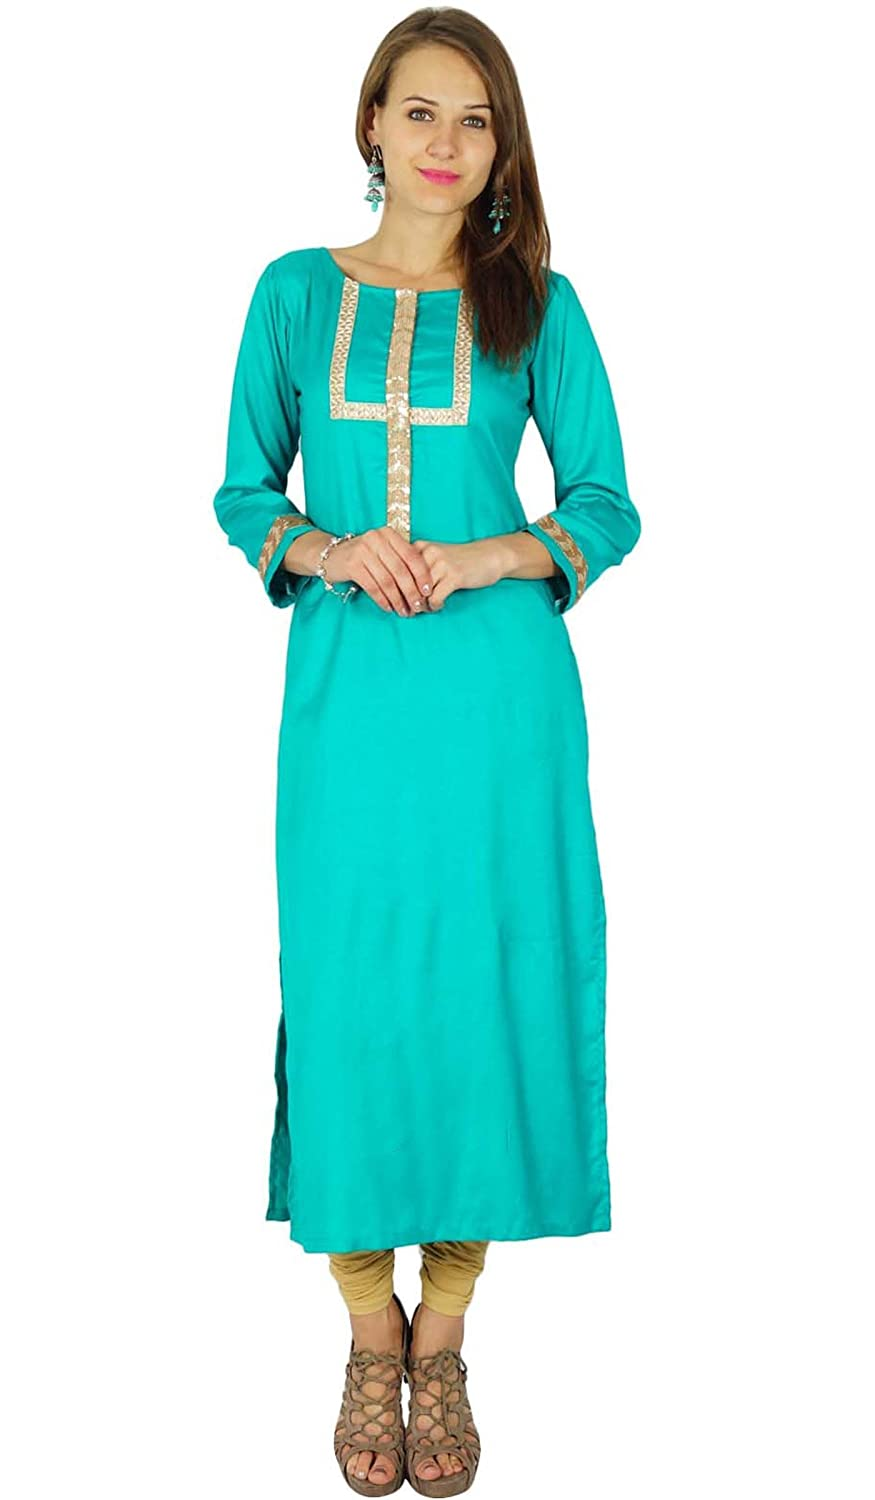 Phagun Indian Designer Bollywood Kurta Women Ethnic Kurti Casual Tunic Dress